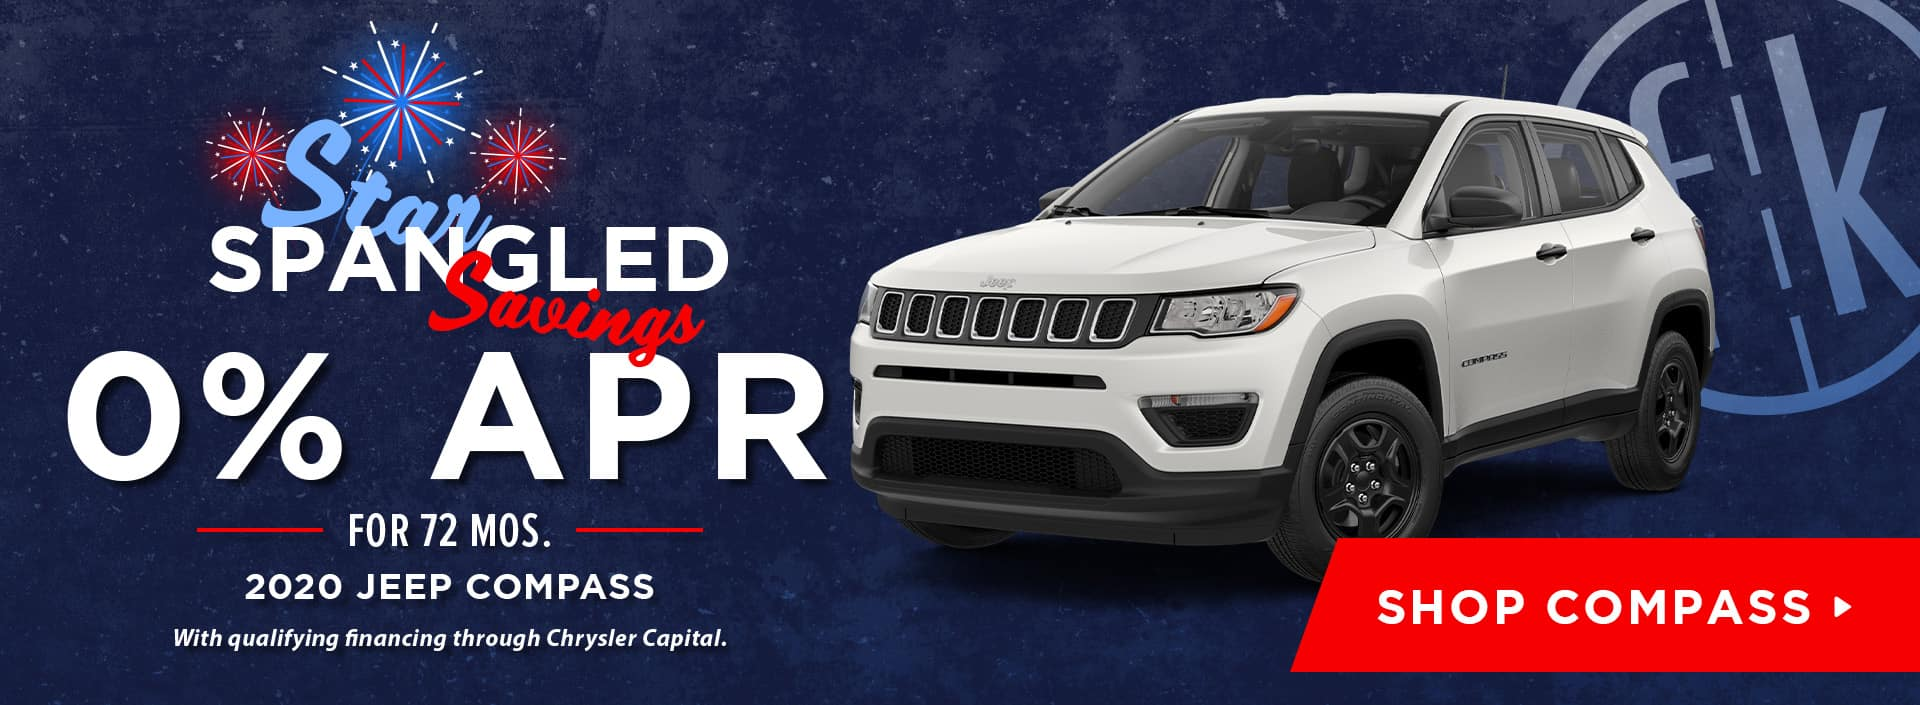 0% for 72 mos. 2020 Jeep Compass